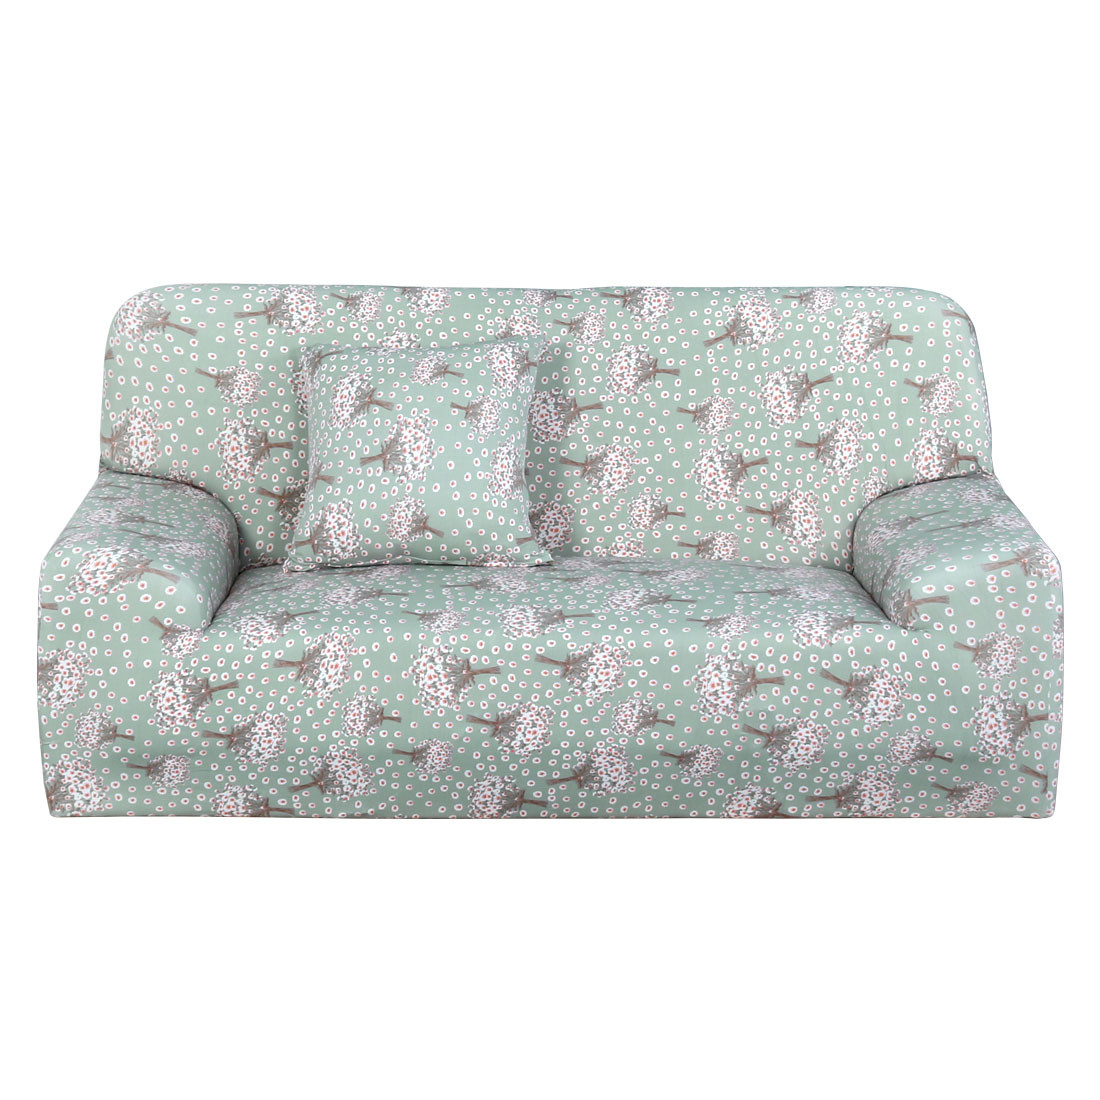 Household Polyester Hyacinth Pattern Elastic 3 Seats Sofa Cover Slipcover Protector 74''-90''